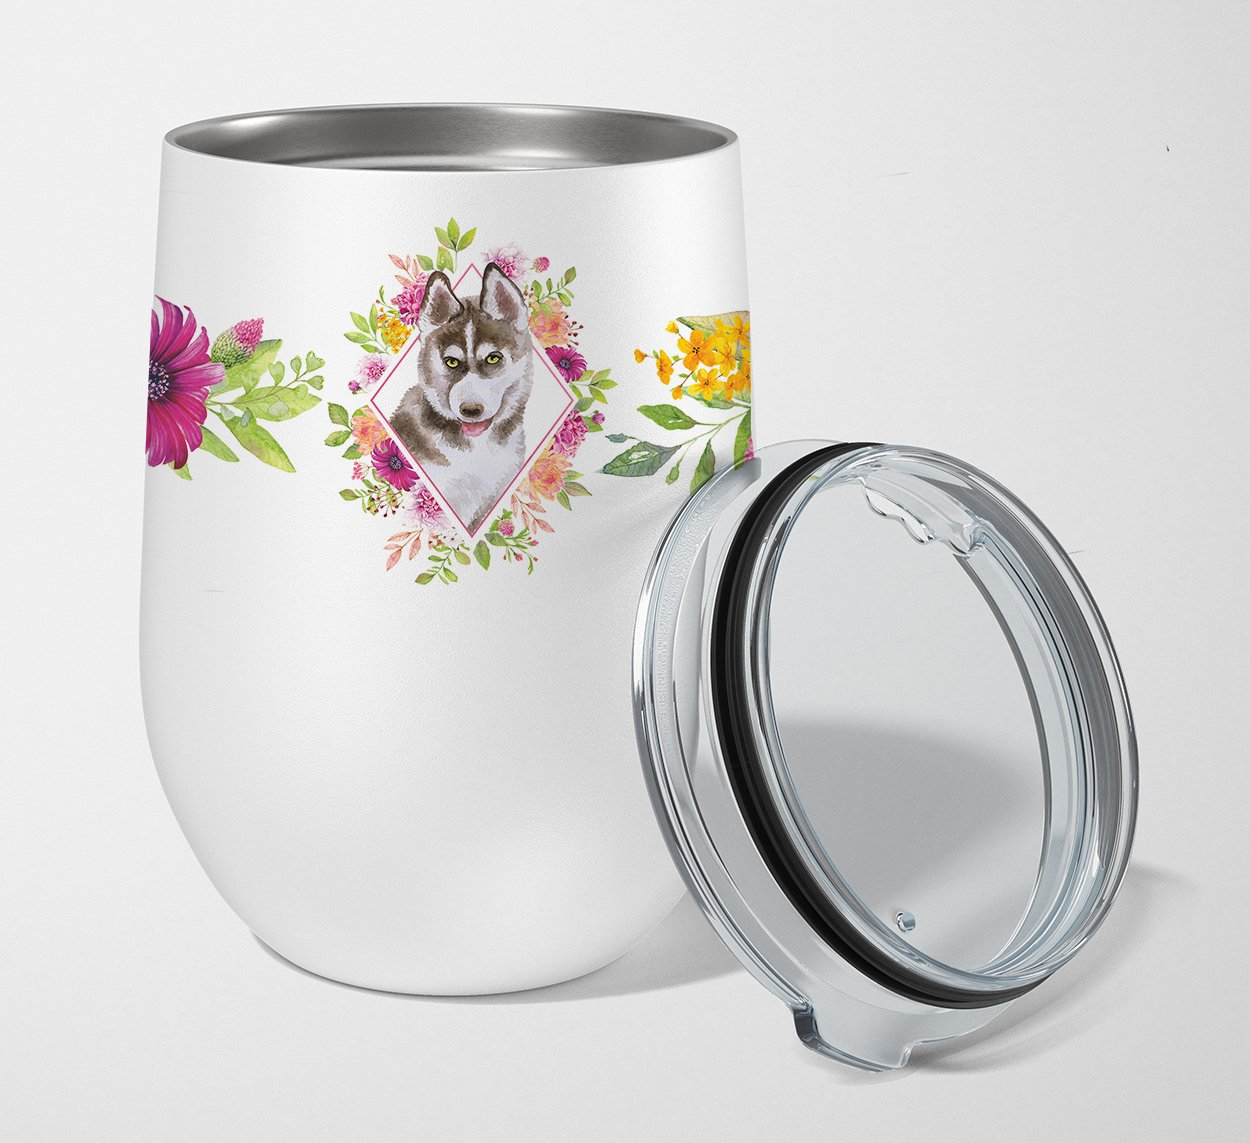 Siberian Husky #2 Pink Flowers Stainless Steel 12 oz Stemless Wine Glass CK4152TBL12 by Caroline's Treasures